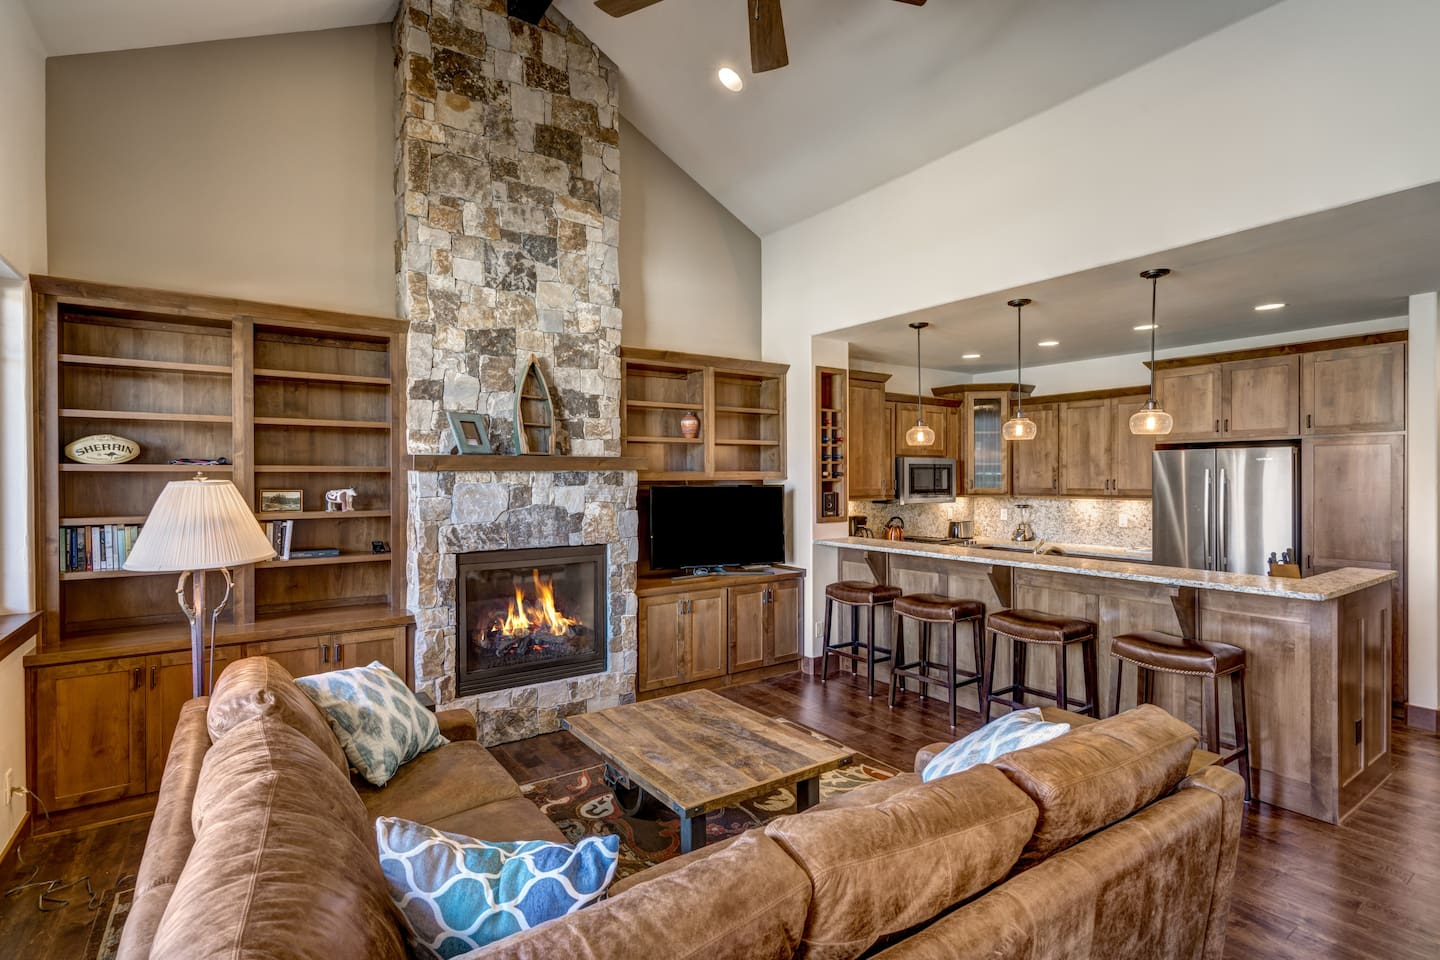 Welcome to Steamboat Springs! This townhouse is professionally managed by TurnKey Vacation Rentals.